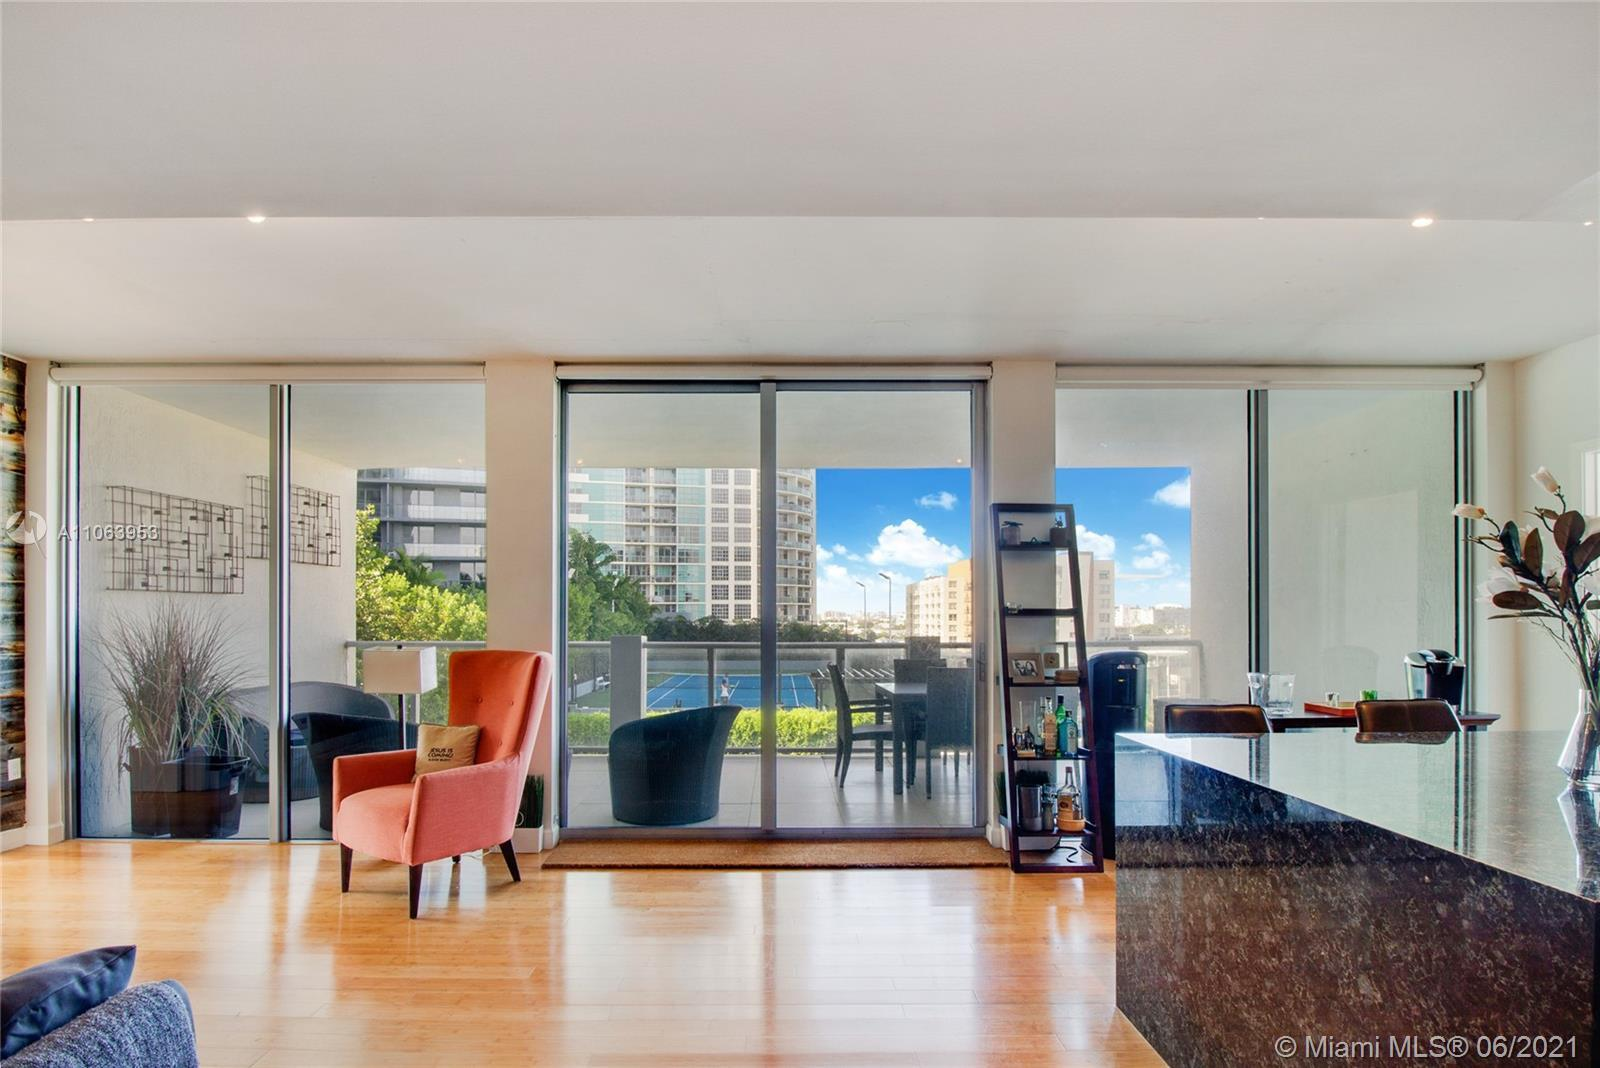 A truly incomparable, furnished, turn-key modern condo in Midtown. This one-of-a-kind end-unit offer